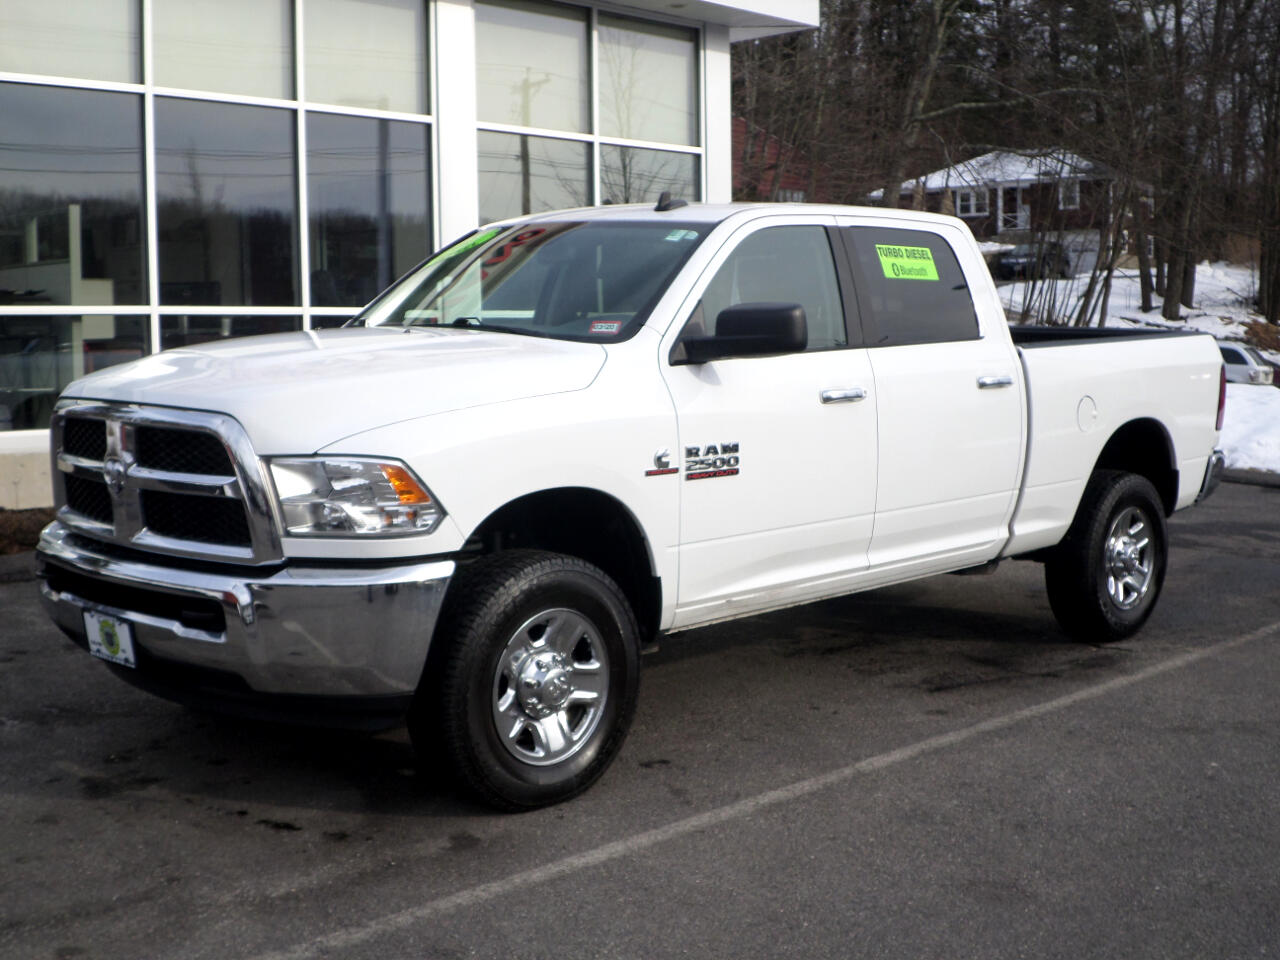 2017 RAM 2500 CREW CAB SHORT BED CUMMINS TURBO DIESEL